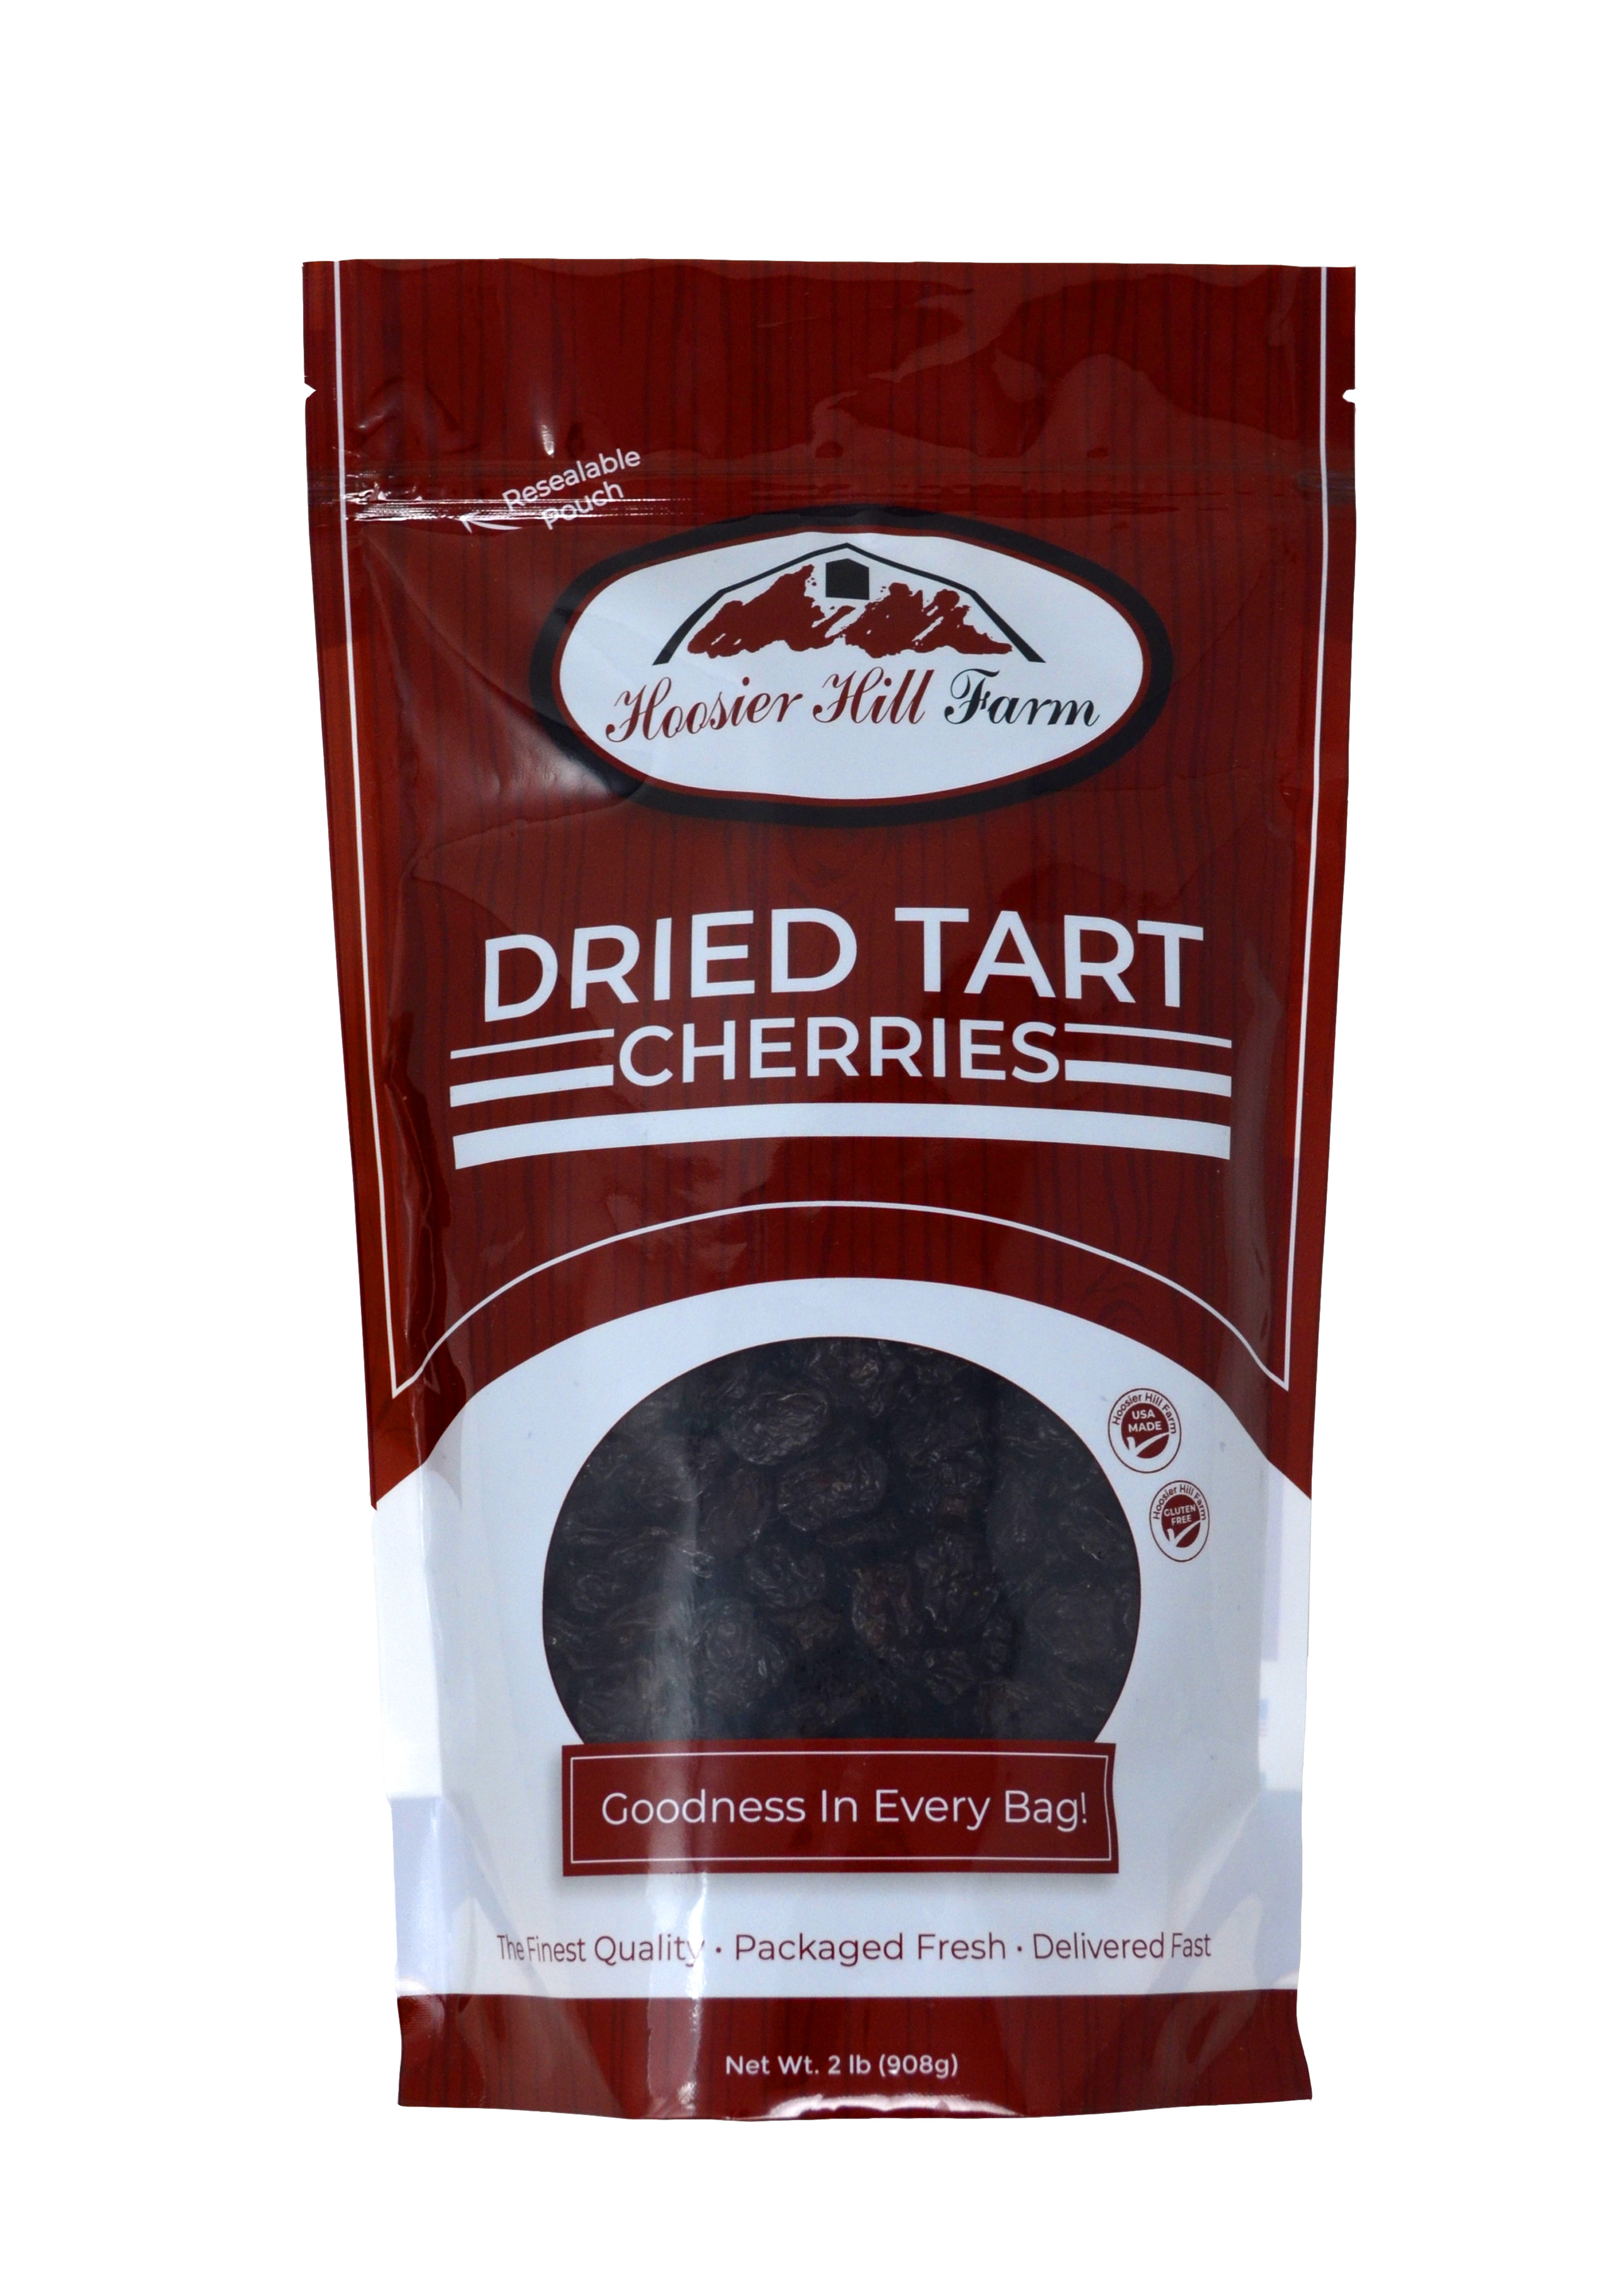 Dried Tart Cherries, Hoosier Hill Farm, 2 lbs